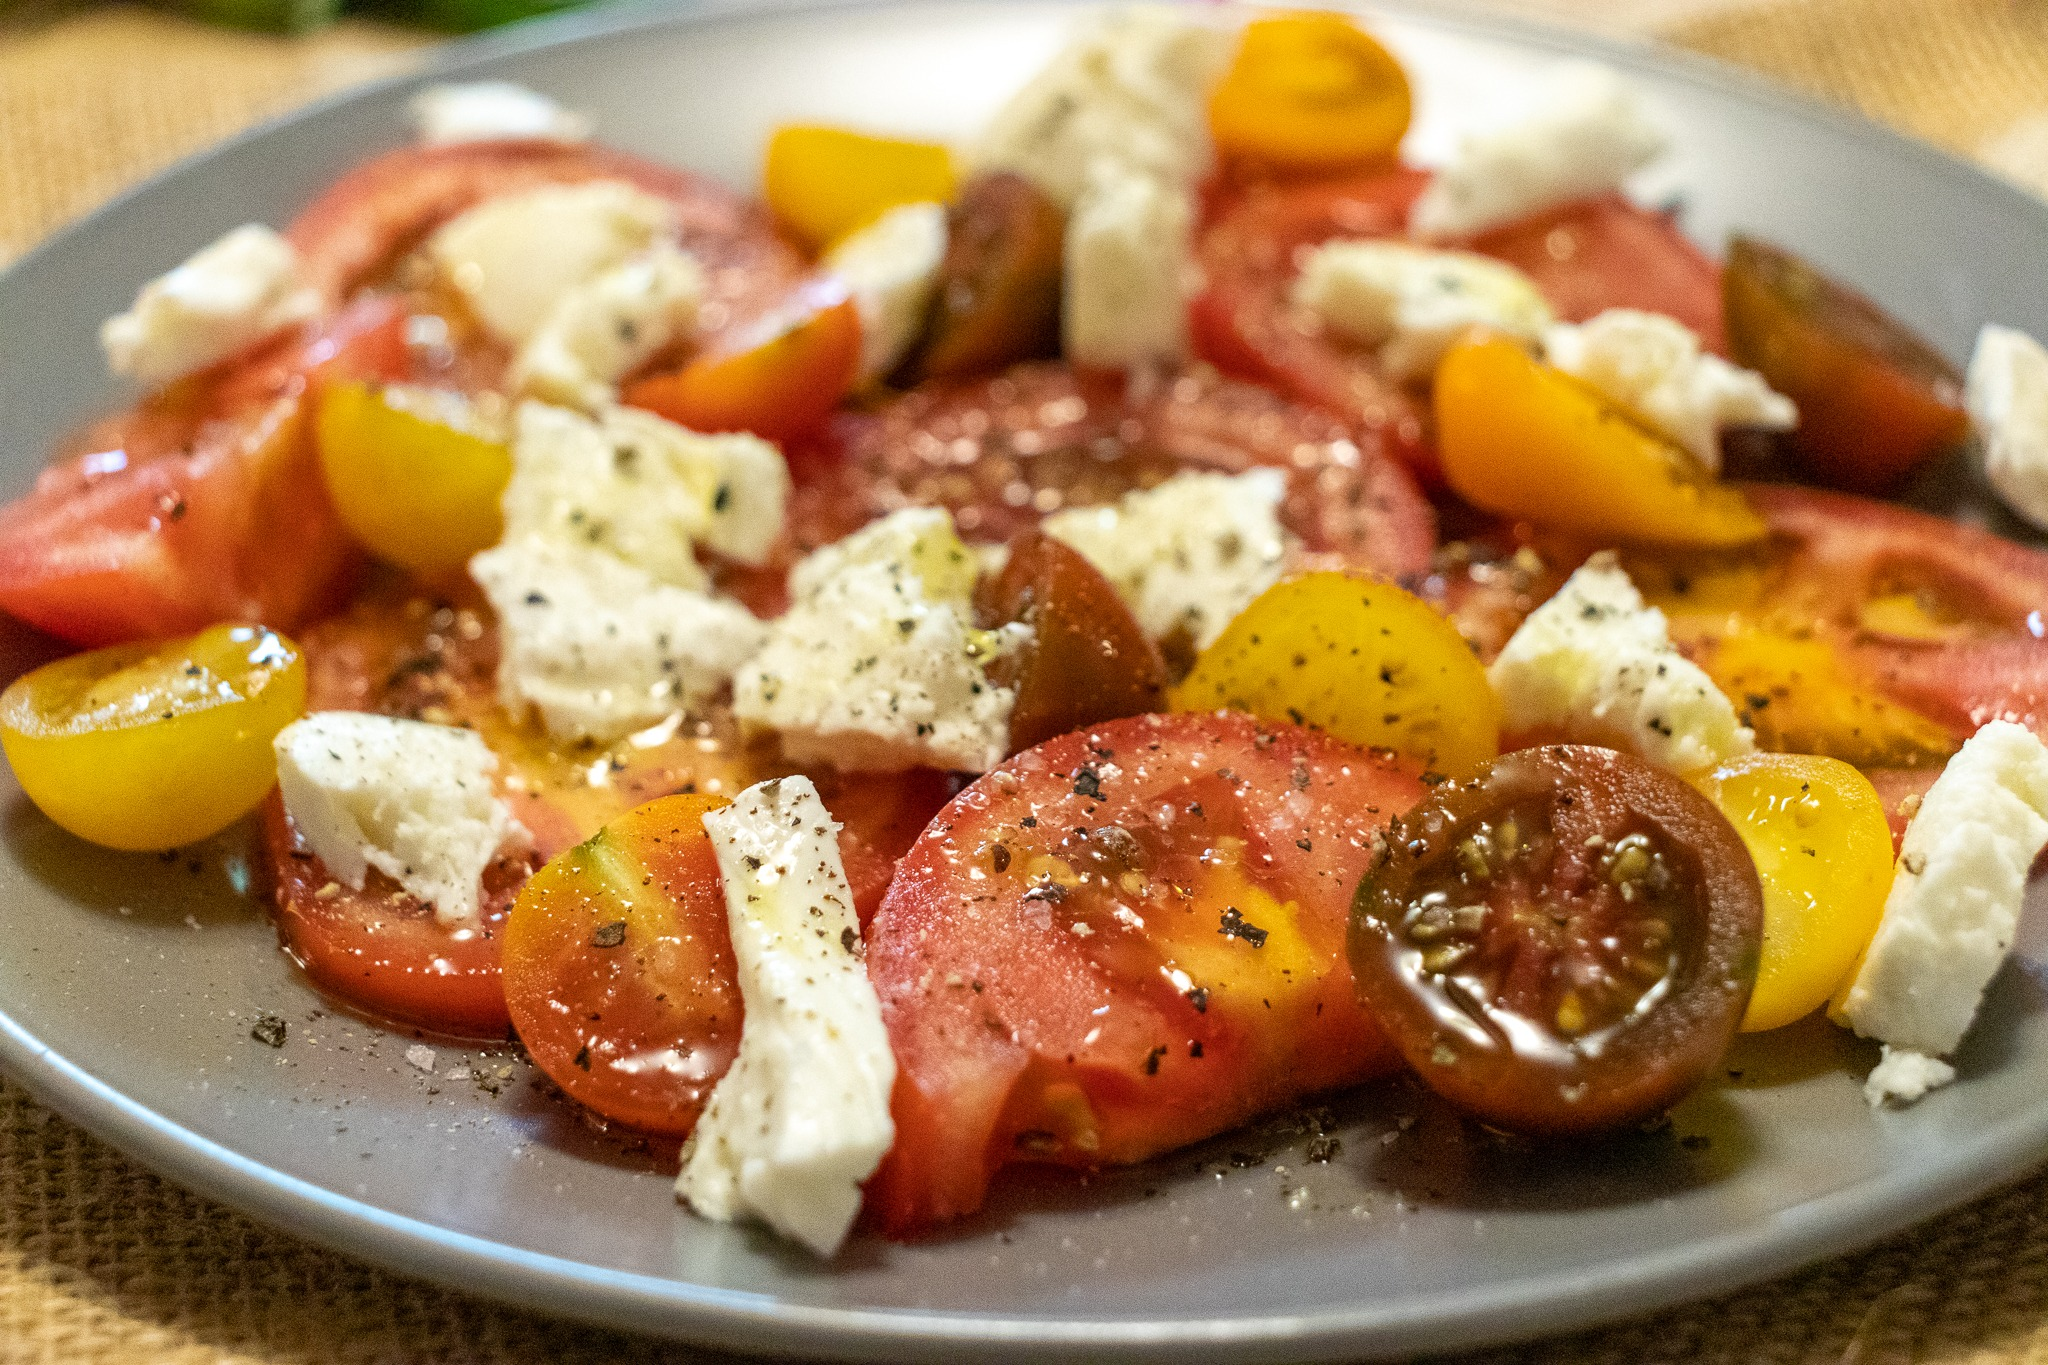 Seasoned tomatoes and cheese on a plate.